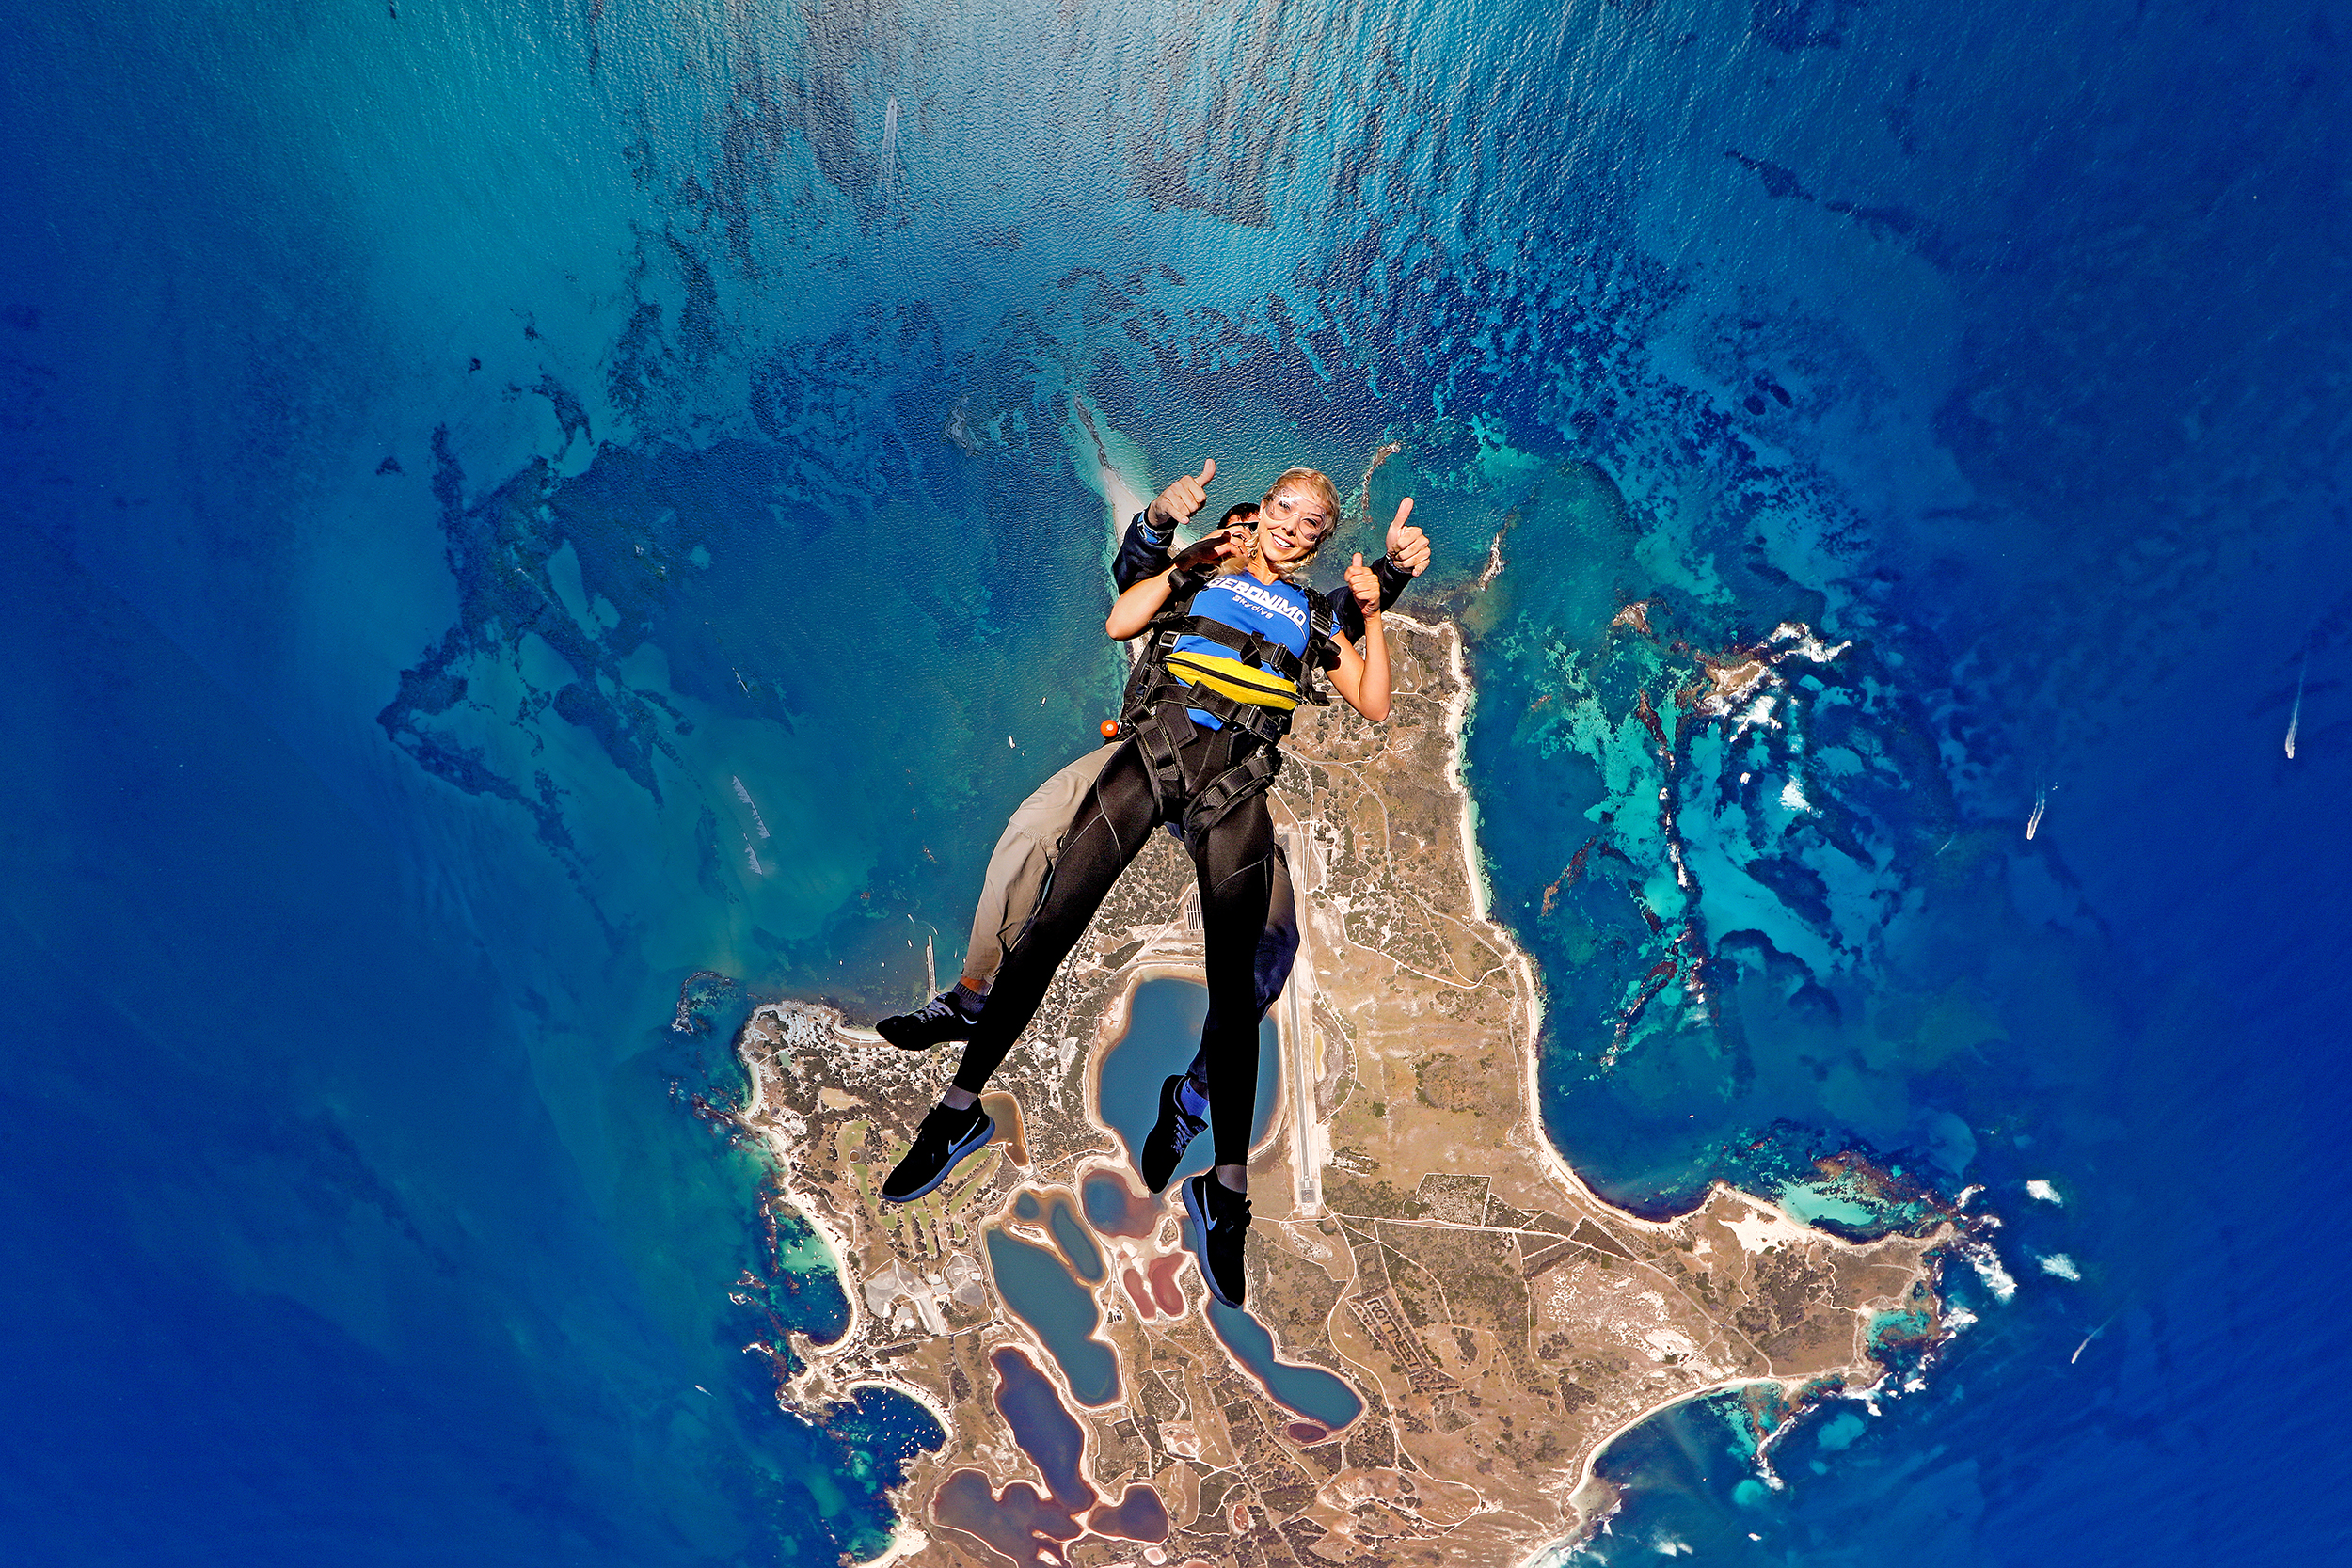 Skydiving over Rottnest Island_Skydive Geronimo-DARK.jpg